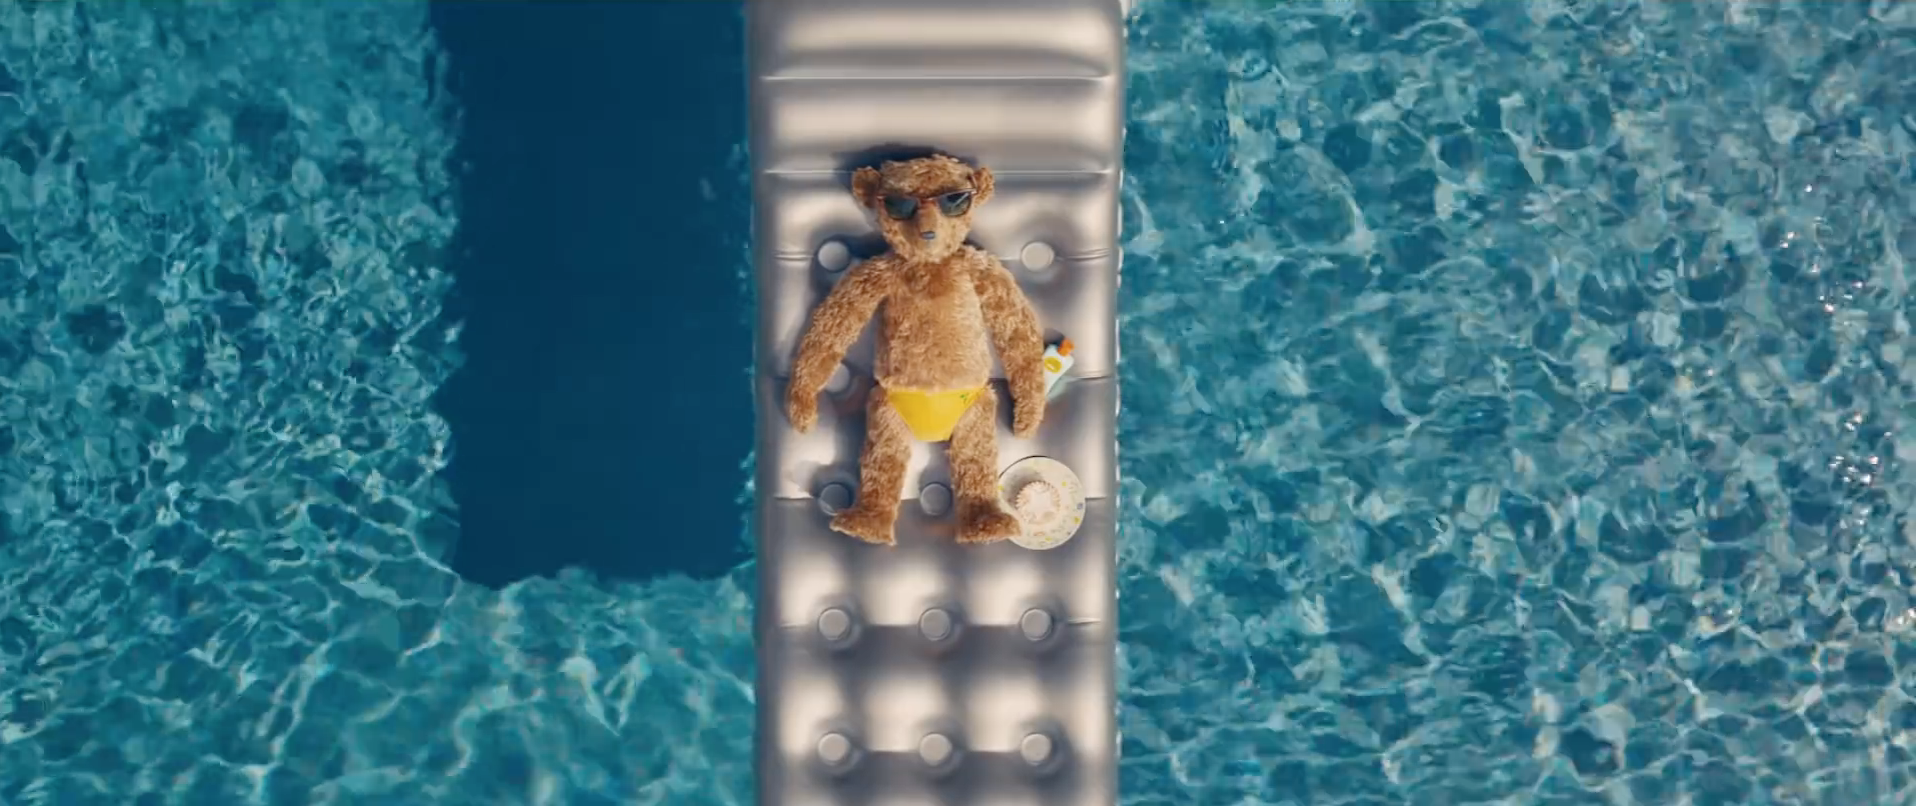 The Heathrow bears quite literally return for the Christmas holidays